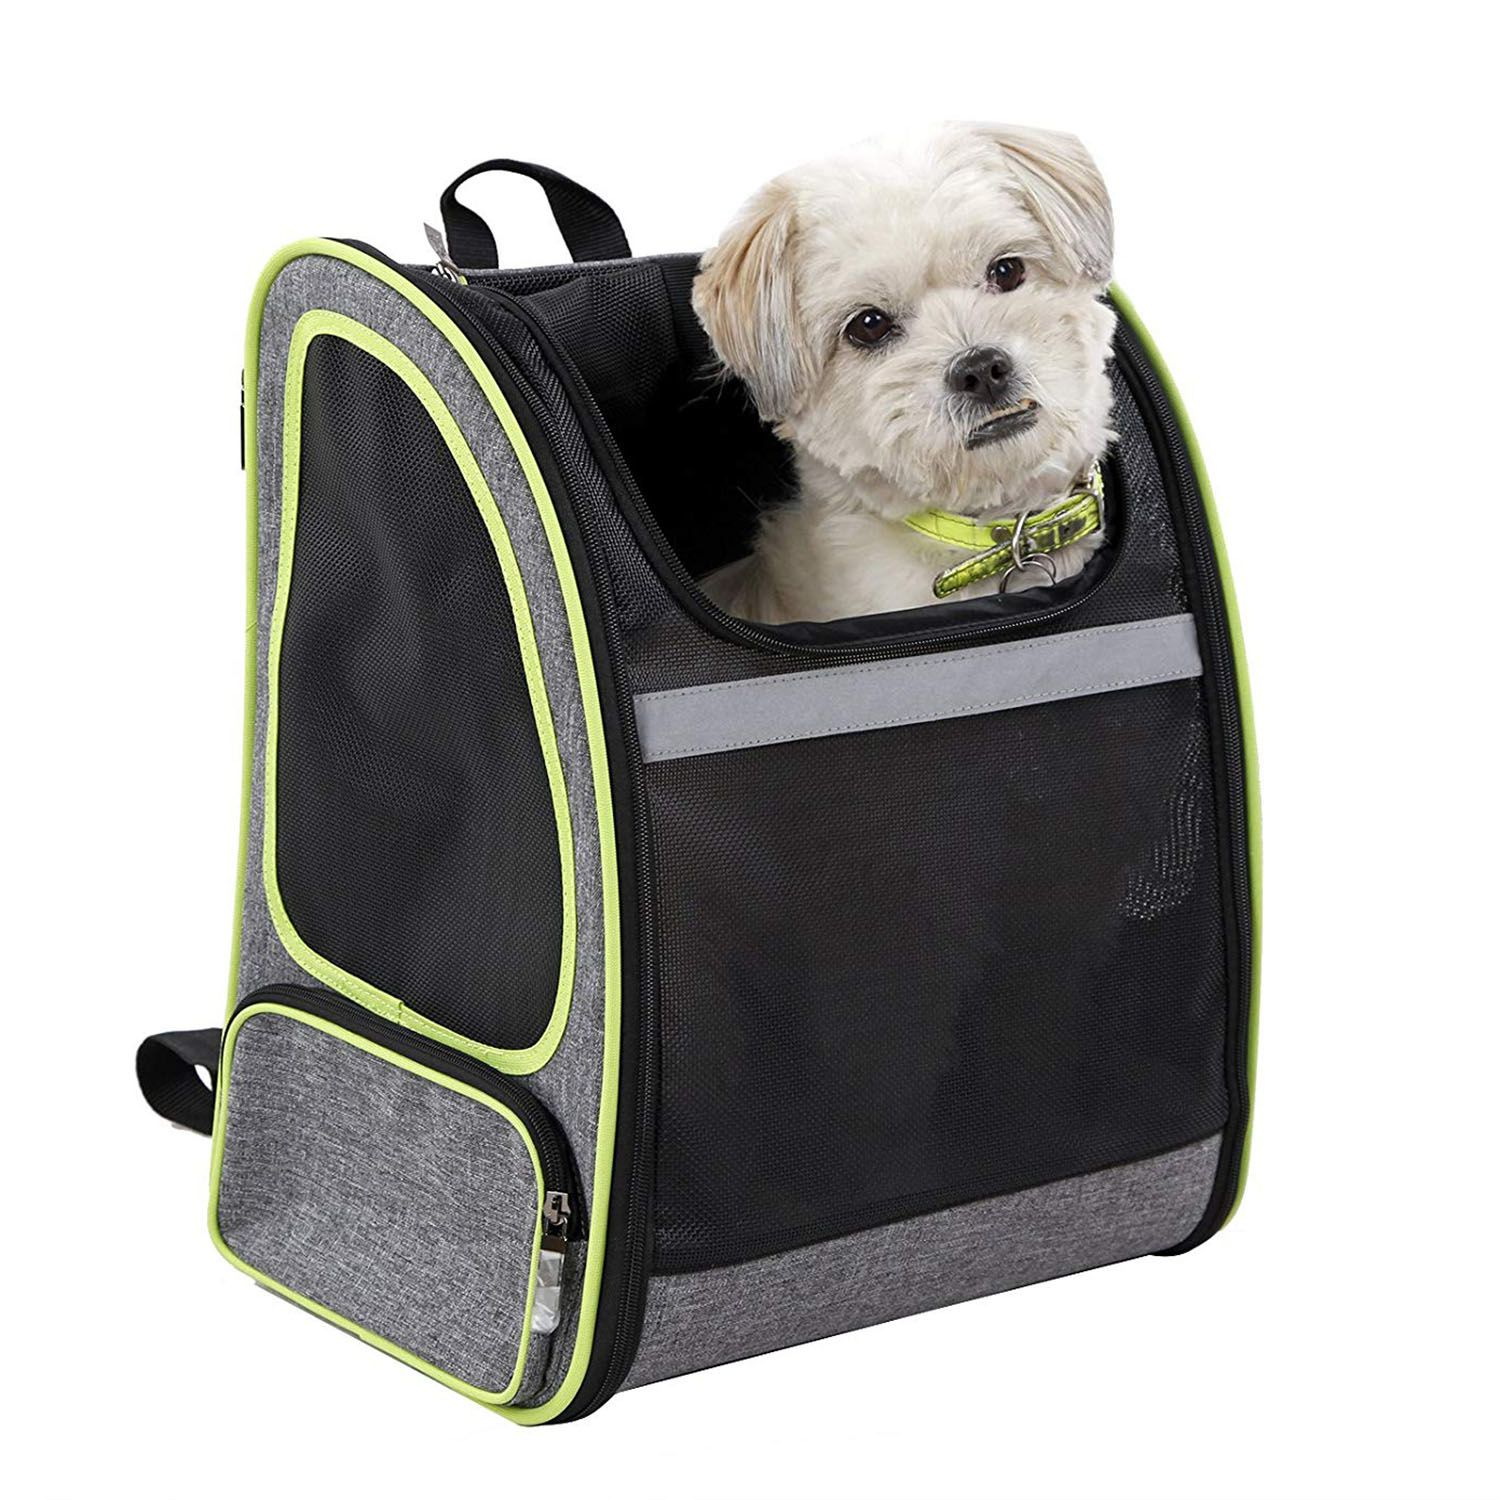 Premium Pet Carrier Backpack For Small Cats And Dogs Ventilated Design, Strap, Buckle Support Designed For Travel, Hiking and